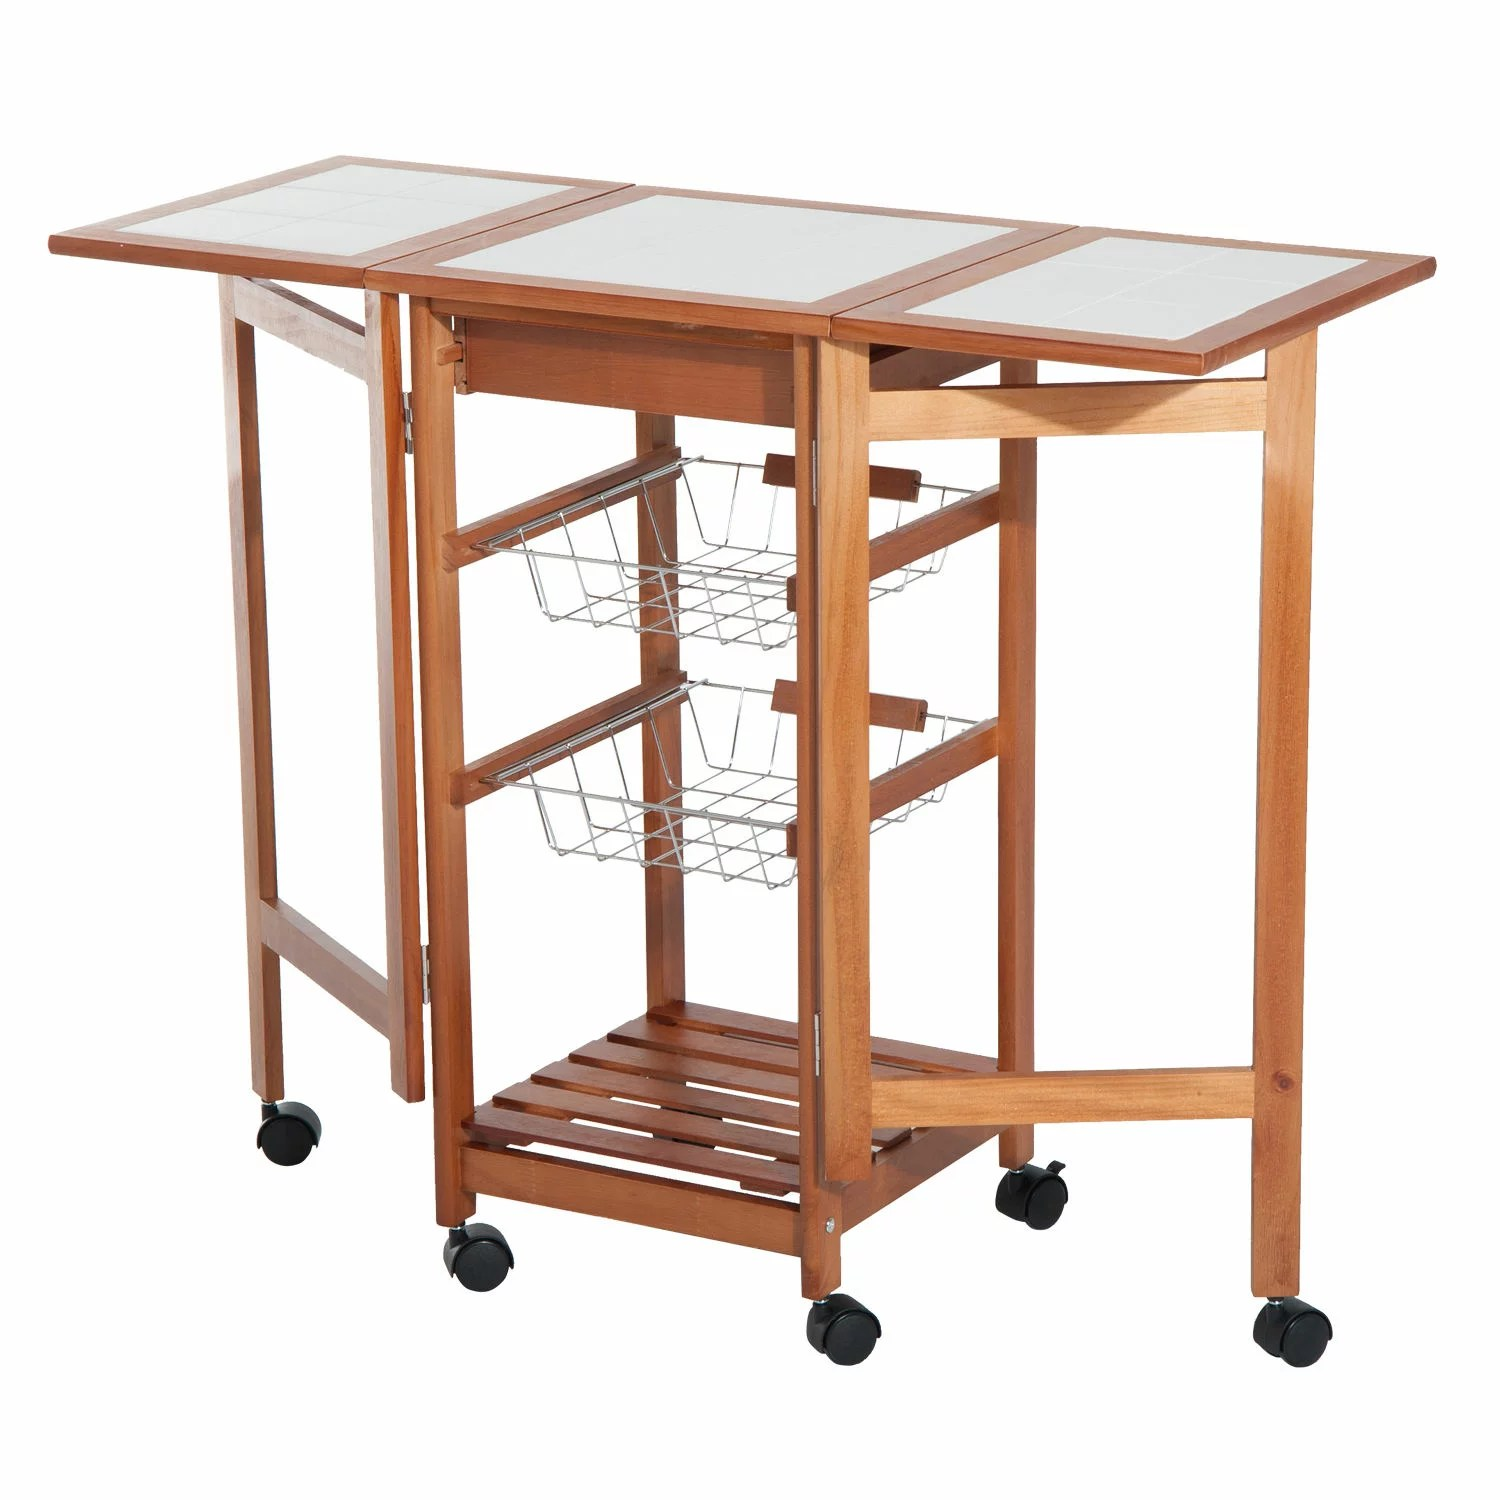 drop leaf kitchen cart extra deep sink aosom homcom rolling tile top wooden trolley storage 6